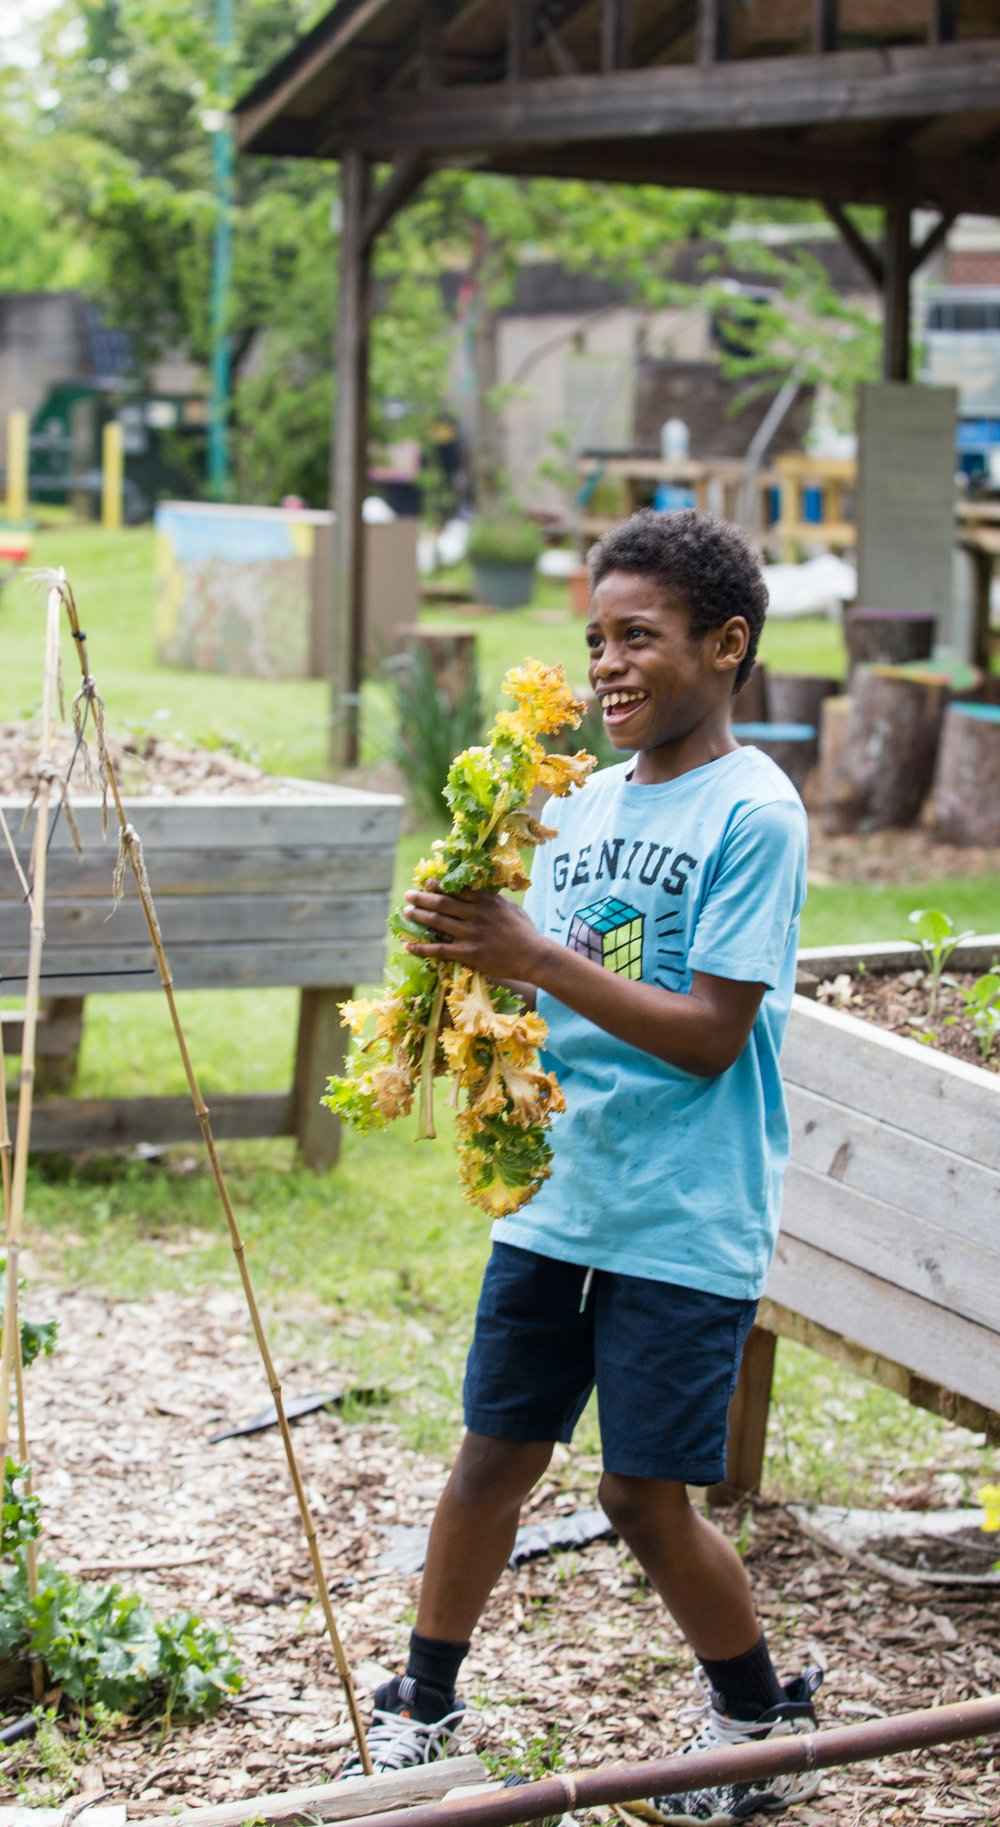 Khaiye Robinson, 11, runs kale clippings to the compost pile to help his mom, Amina Robinson, at the Habesha community garden in the Mechanicsville neighborhood Thursday, April 9, 2020. (Jenni Girtman for Atlanta Journal Constitution)